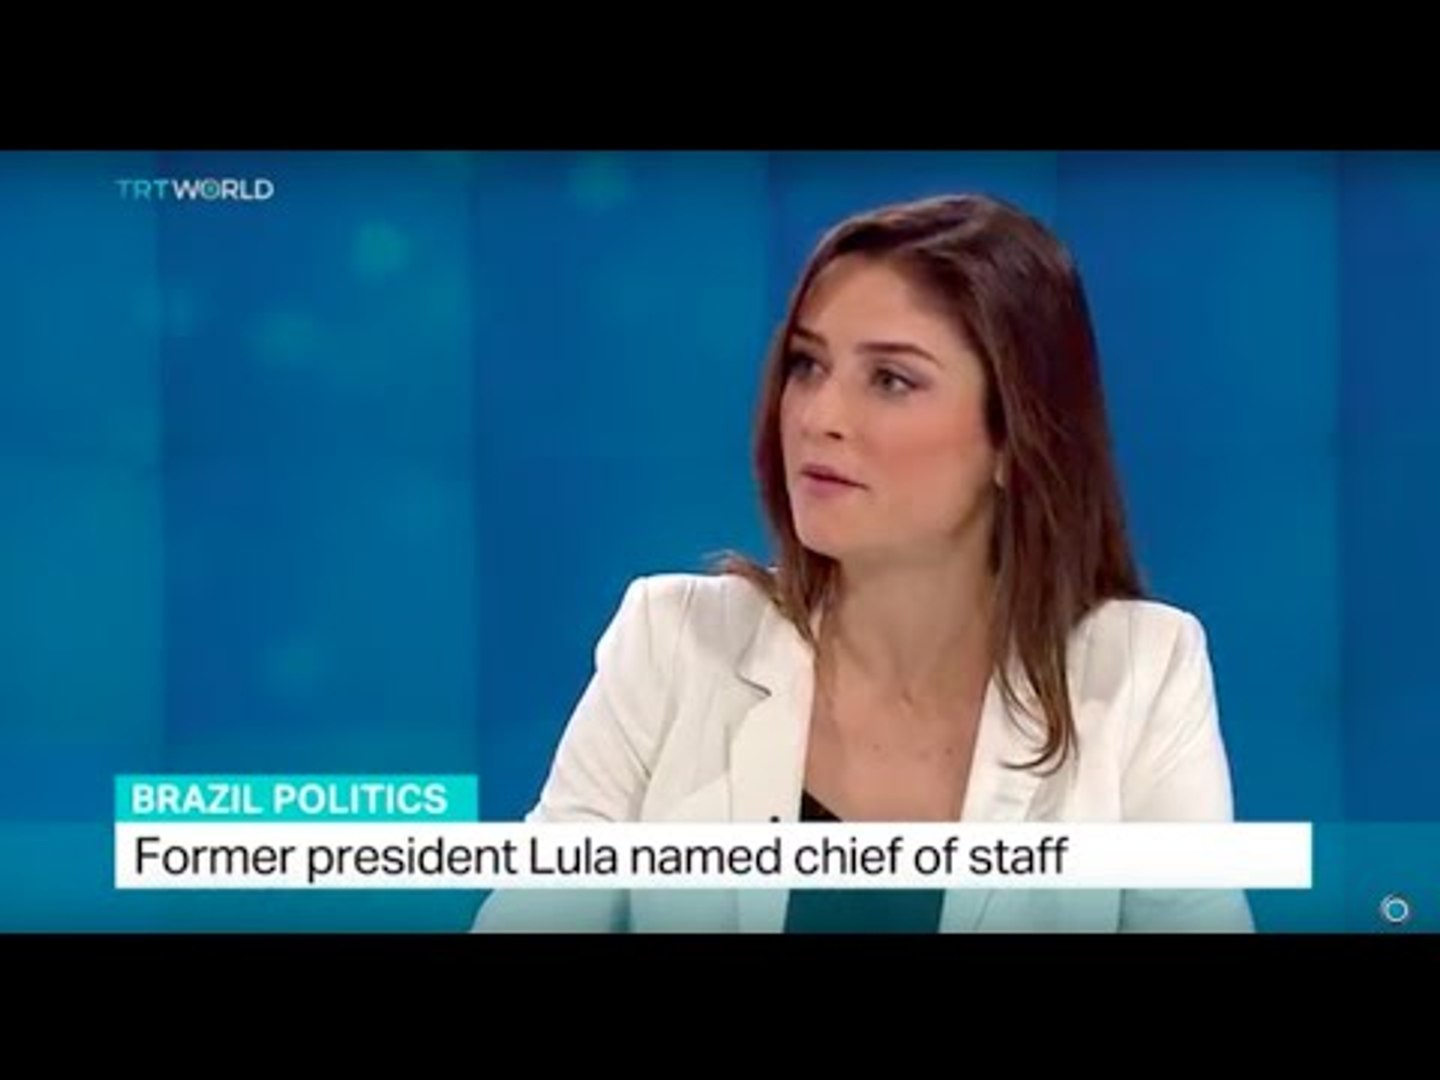 TRT World's Anelise Borges talks about former president Lula's appointment